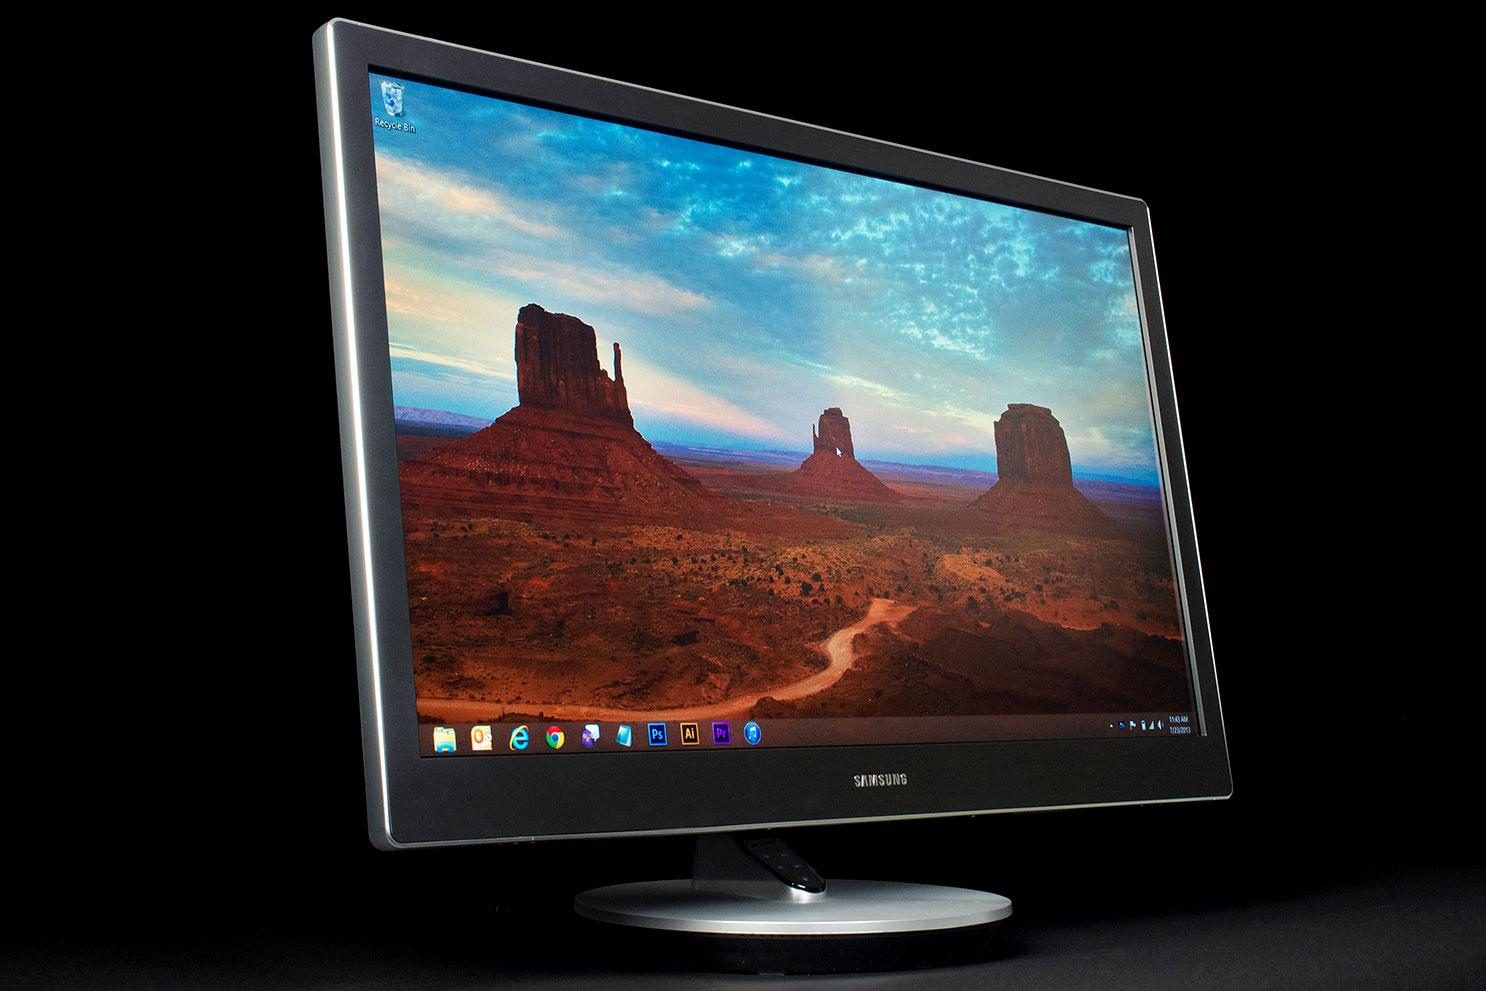 Monitor Buying Guide Do You Need A 120hz Or 240hz Monitor